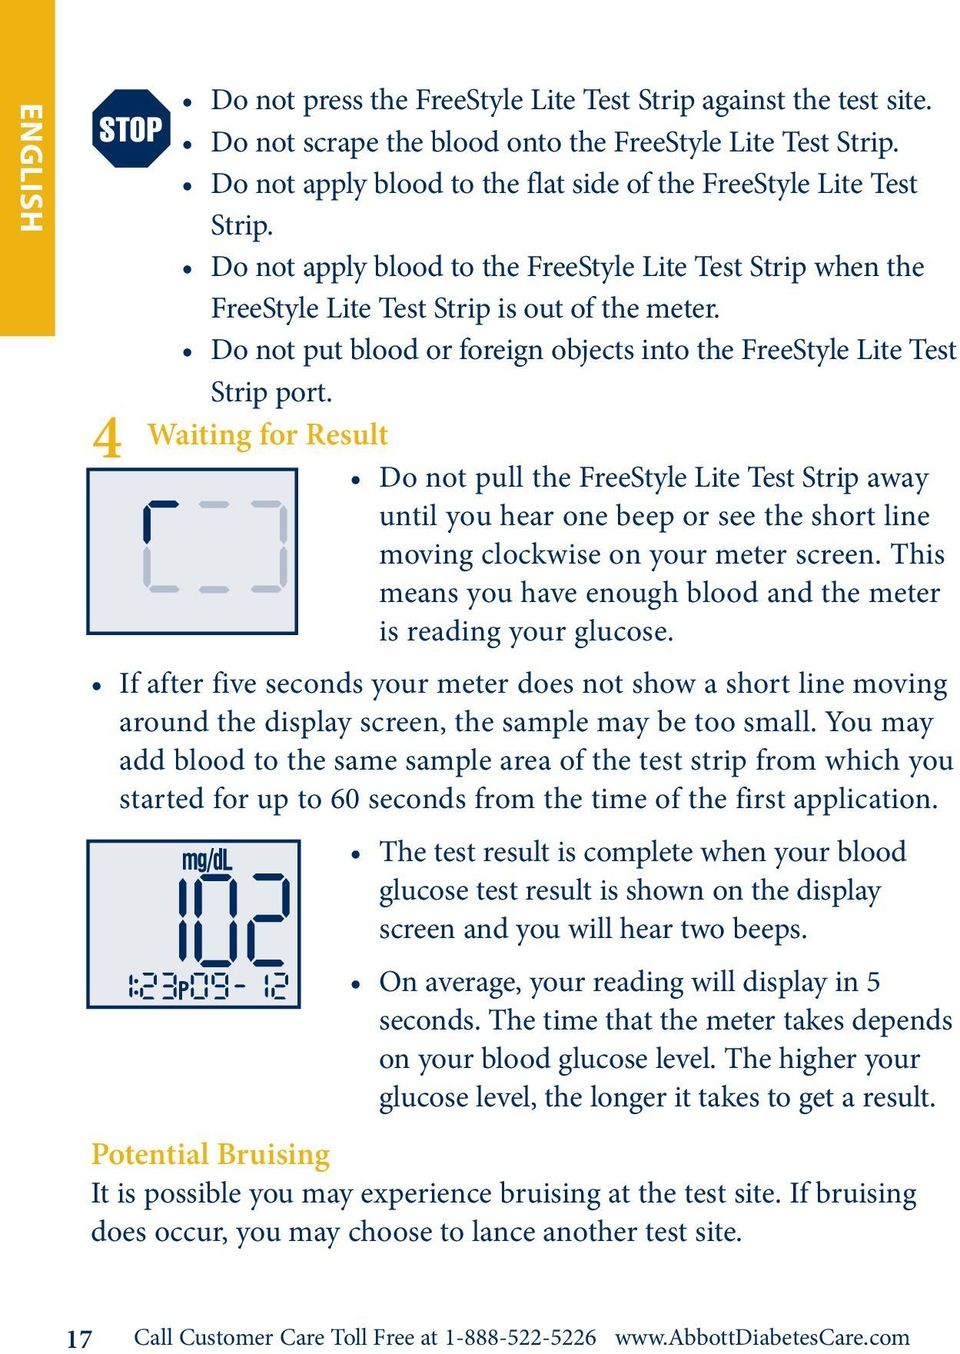 Do not put blood or foreign objects into the FreeStyle Lite Test Strip port.